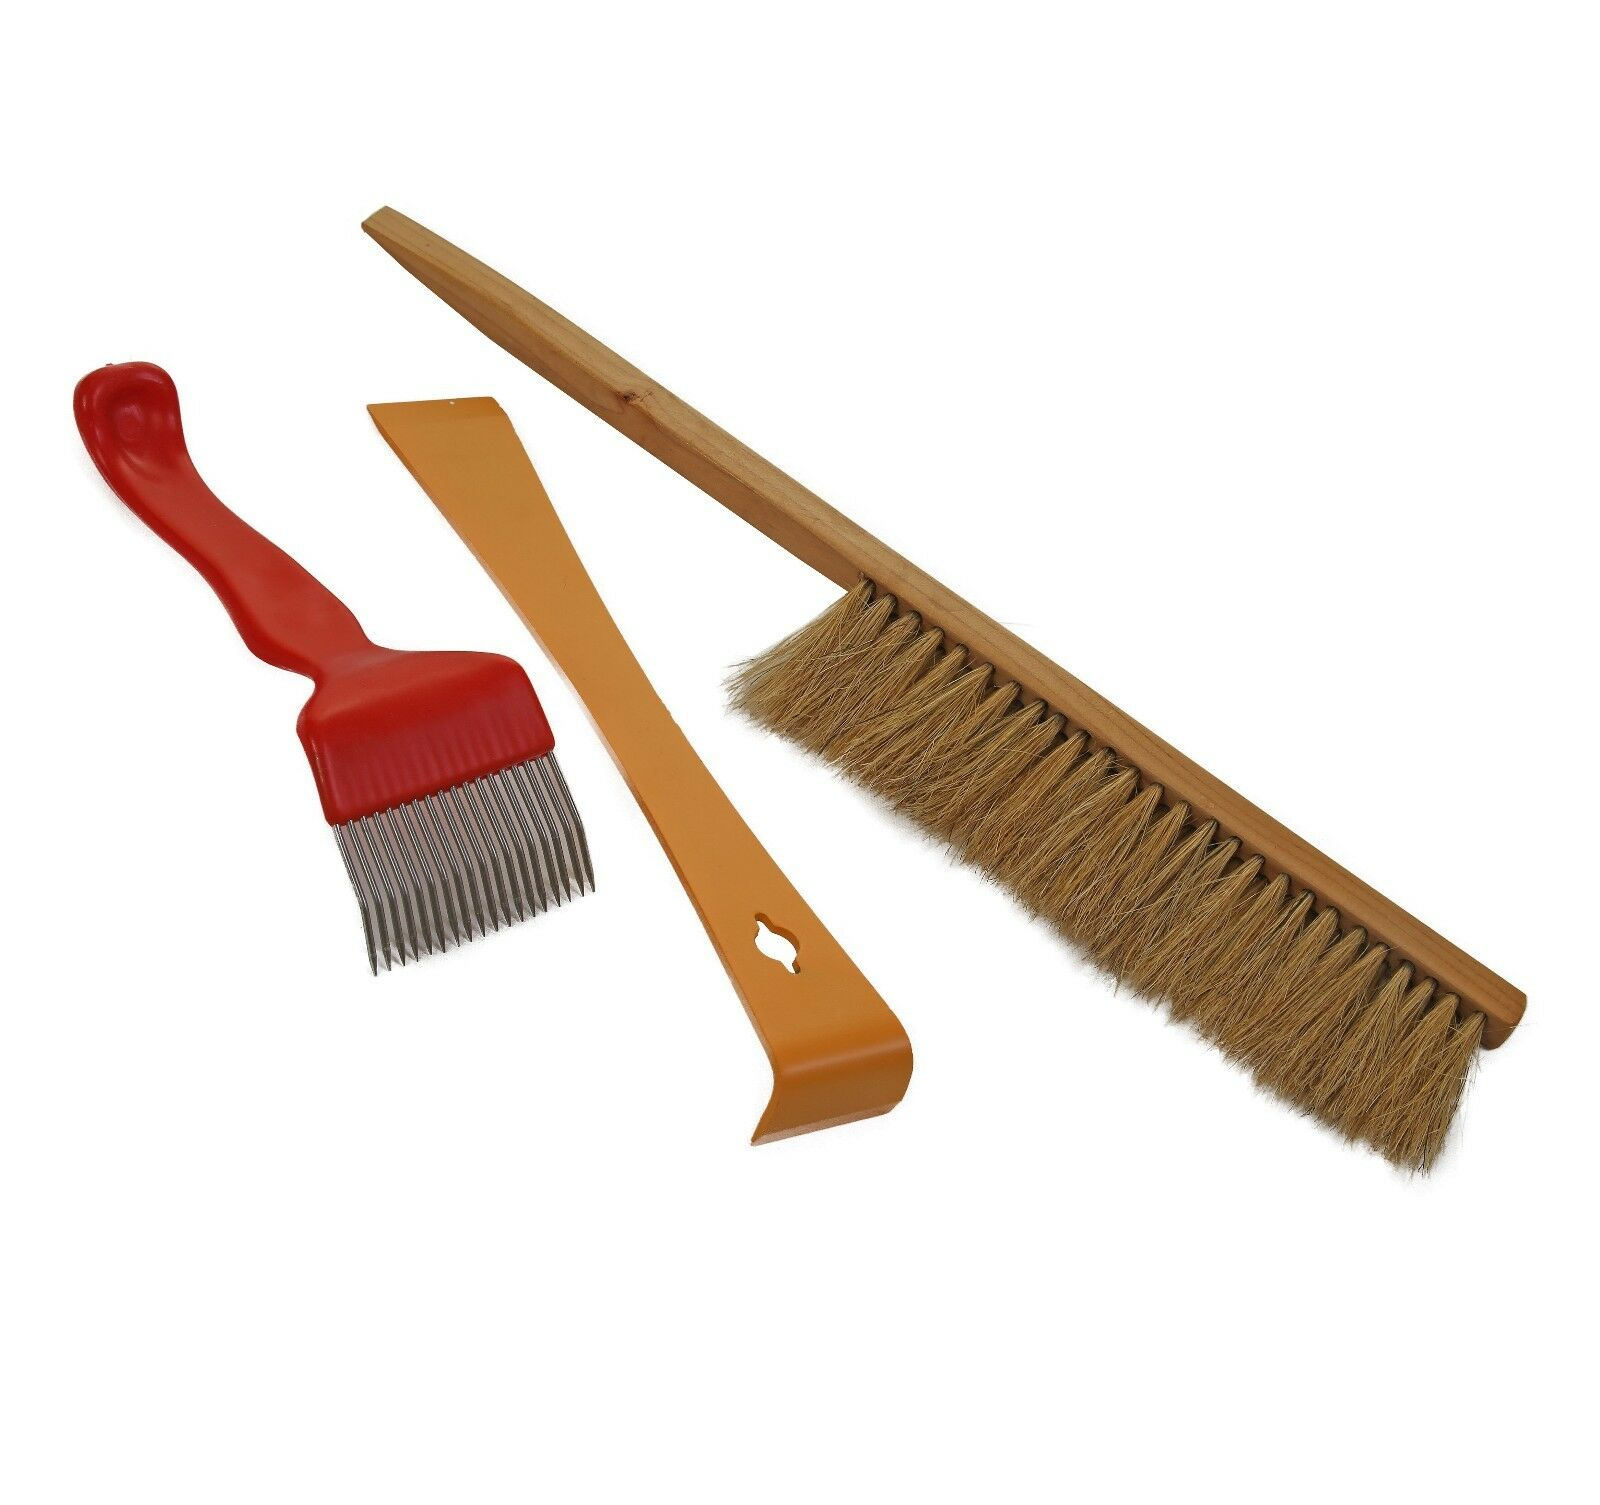 Bee brush, Hive tool, and Uncapping fork